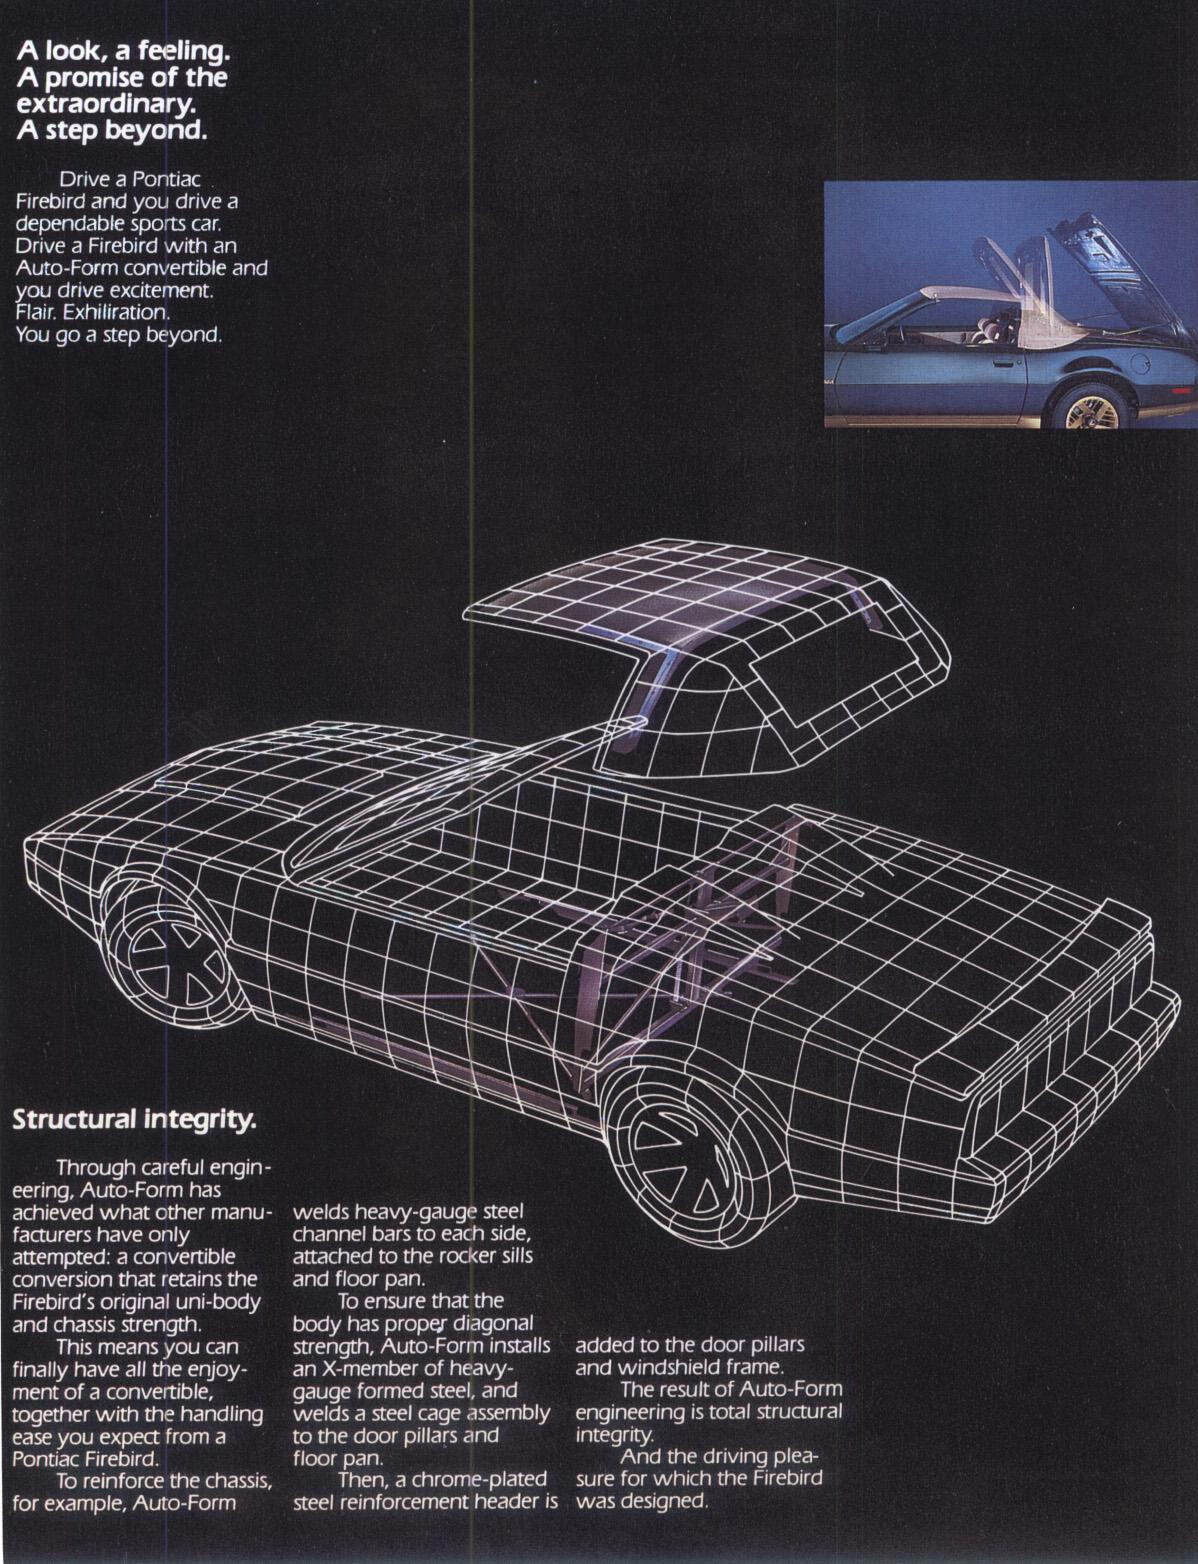 Autoform Firebirds Lot1 1983 Pontiac Firebird Belt Diagram The 1984 Convertible Images Are Large In Event Someone Wants To Print Them So File Size Is On Some Of As Well